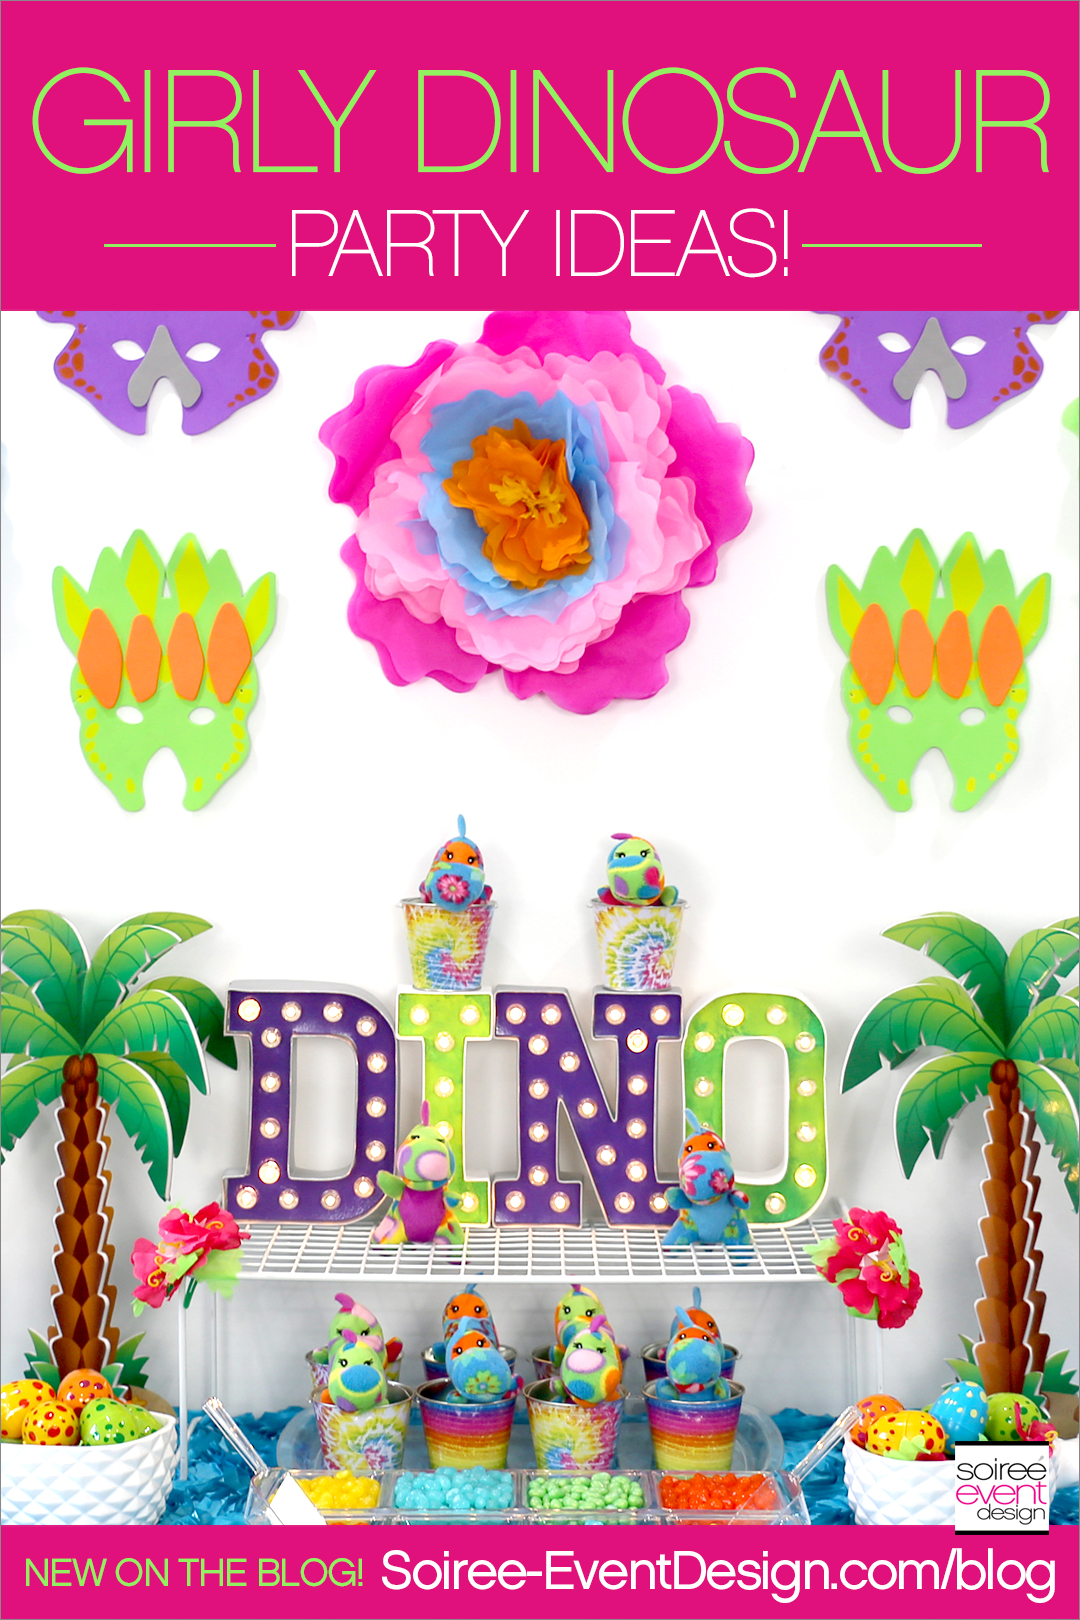 Girly Dinosaur Party Ideas For Girls including a Girly Dinosaur Candy Table, Dress Up Bar & Dinosaur Tail Chairs!